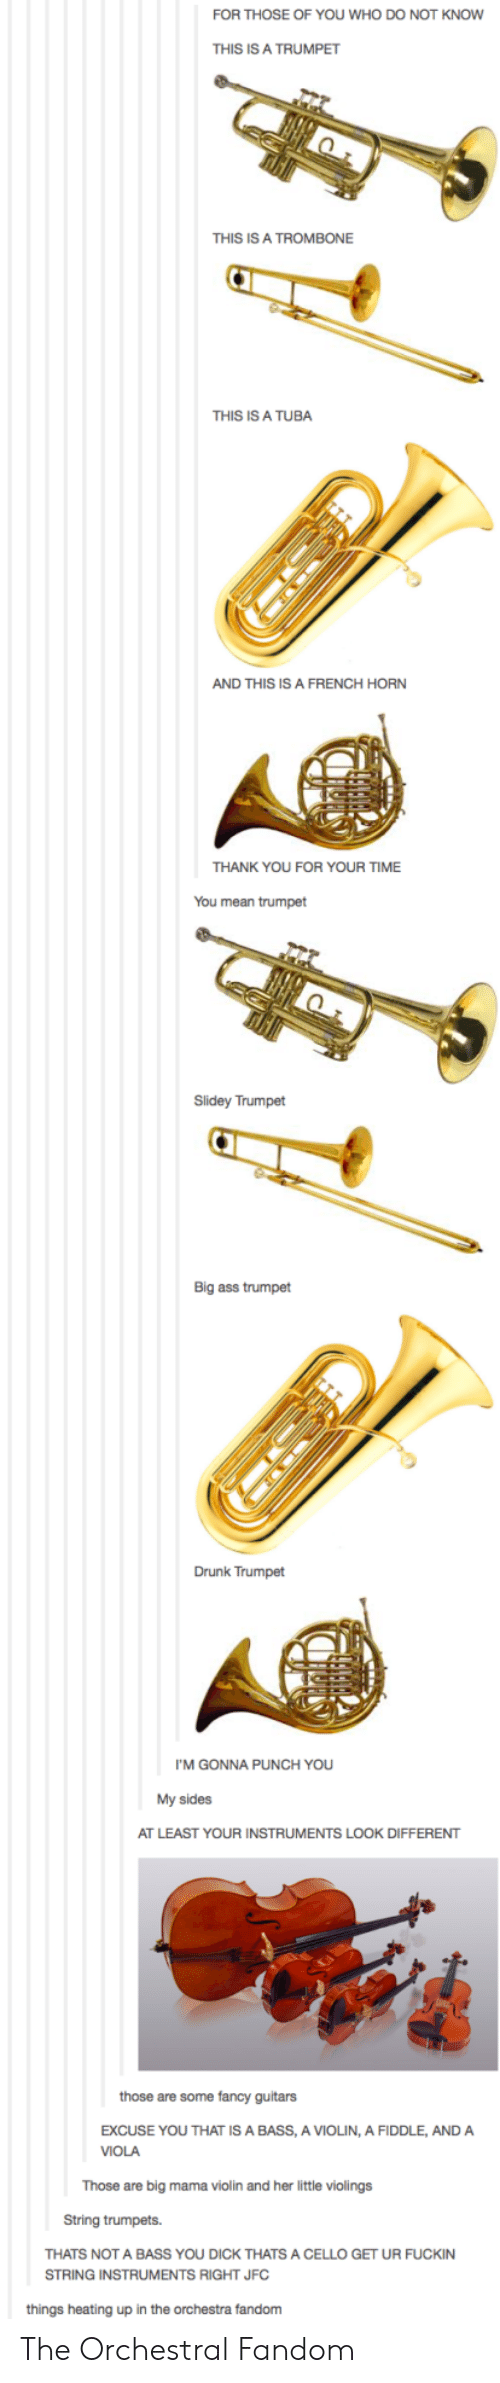 My Sides: FOR THOSE OF YOU WHO DO NOT KNOW  THIS IS A TRUMPET  THIS IS A TROMBONE  THIS IS A TUBA  AND THIS IS A FRENCH HORN  THANK YOU FOR YOUR TIME  You mean trumpet  Slidey Trumpet  Big ass trumpet  Drunk Trumpet  I'M GONNA PUNCH YOU  My sides  AT LEAST YOUR INSTRUMENTS LOOK DIFFERENT  those are some fancy guitars  EXCUSE YOU THAT IS A BASS, A VIOLIN, A FIDDLE, ANDA  VIOLA  Those are big mama violin and her little violings  String trumpets.  THATS NOT A BASS YOU DICK THATS A CELLO GET UR FUCKIN  STRING INSTRUMENTS RIGHT JFC  things heating up in the orchestra fandom The Orchestral Fandom